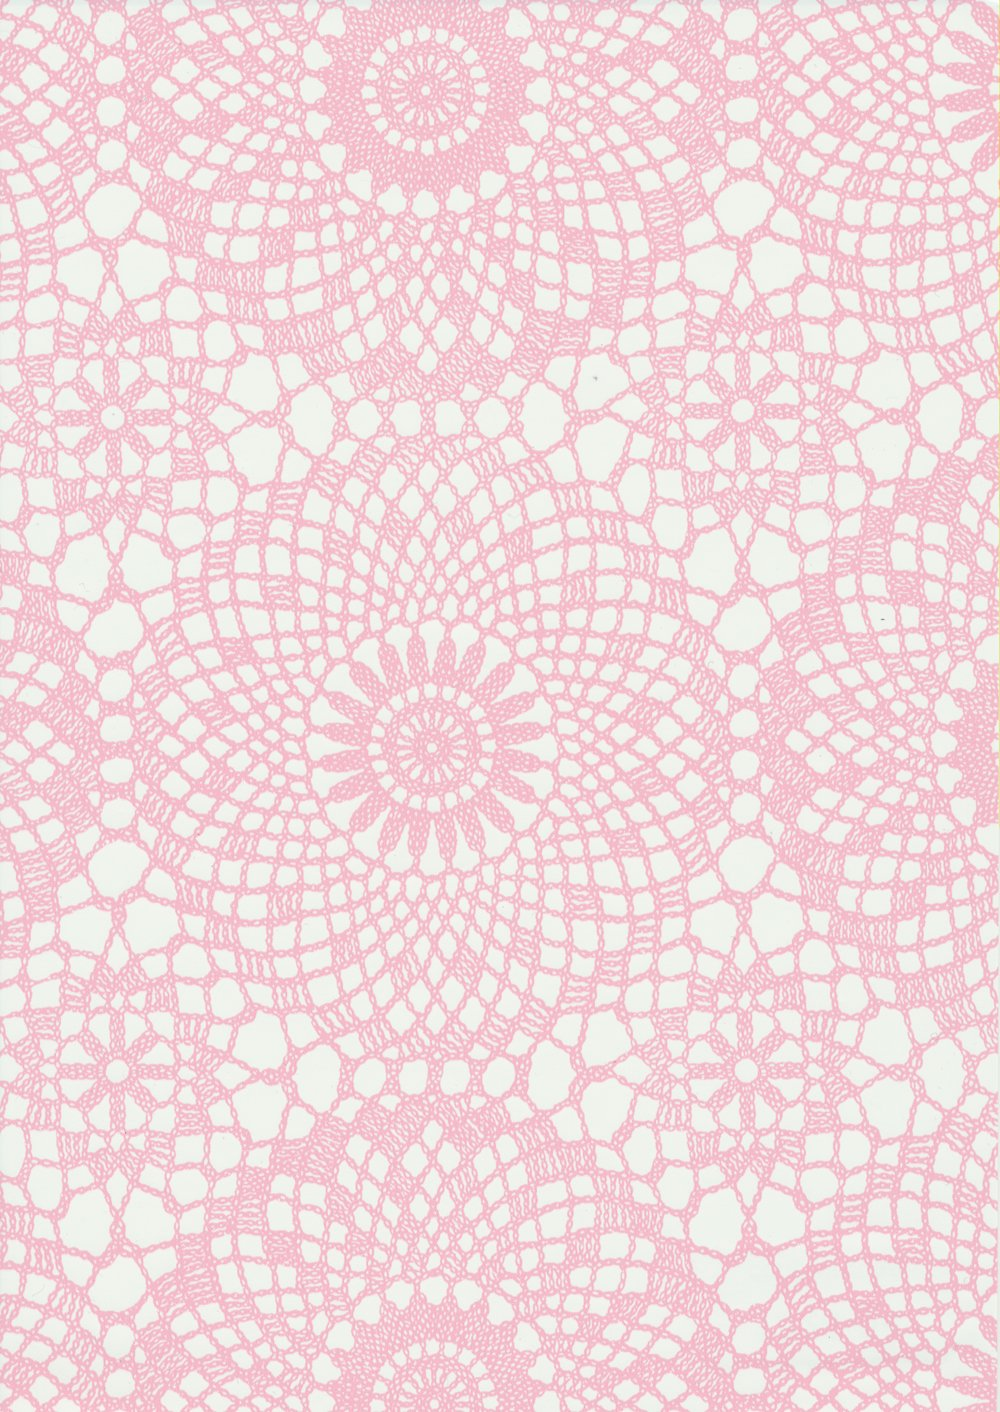 Fablon FAB12647 45 cm x 2 m Roll Contour, Rose Fine Decor